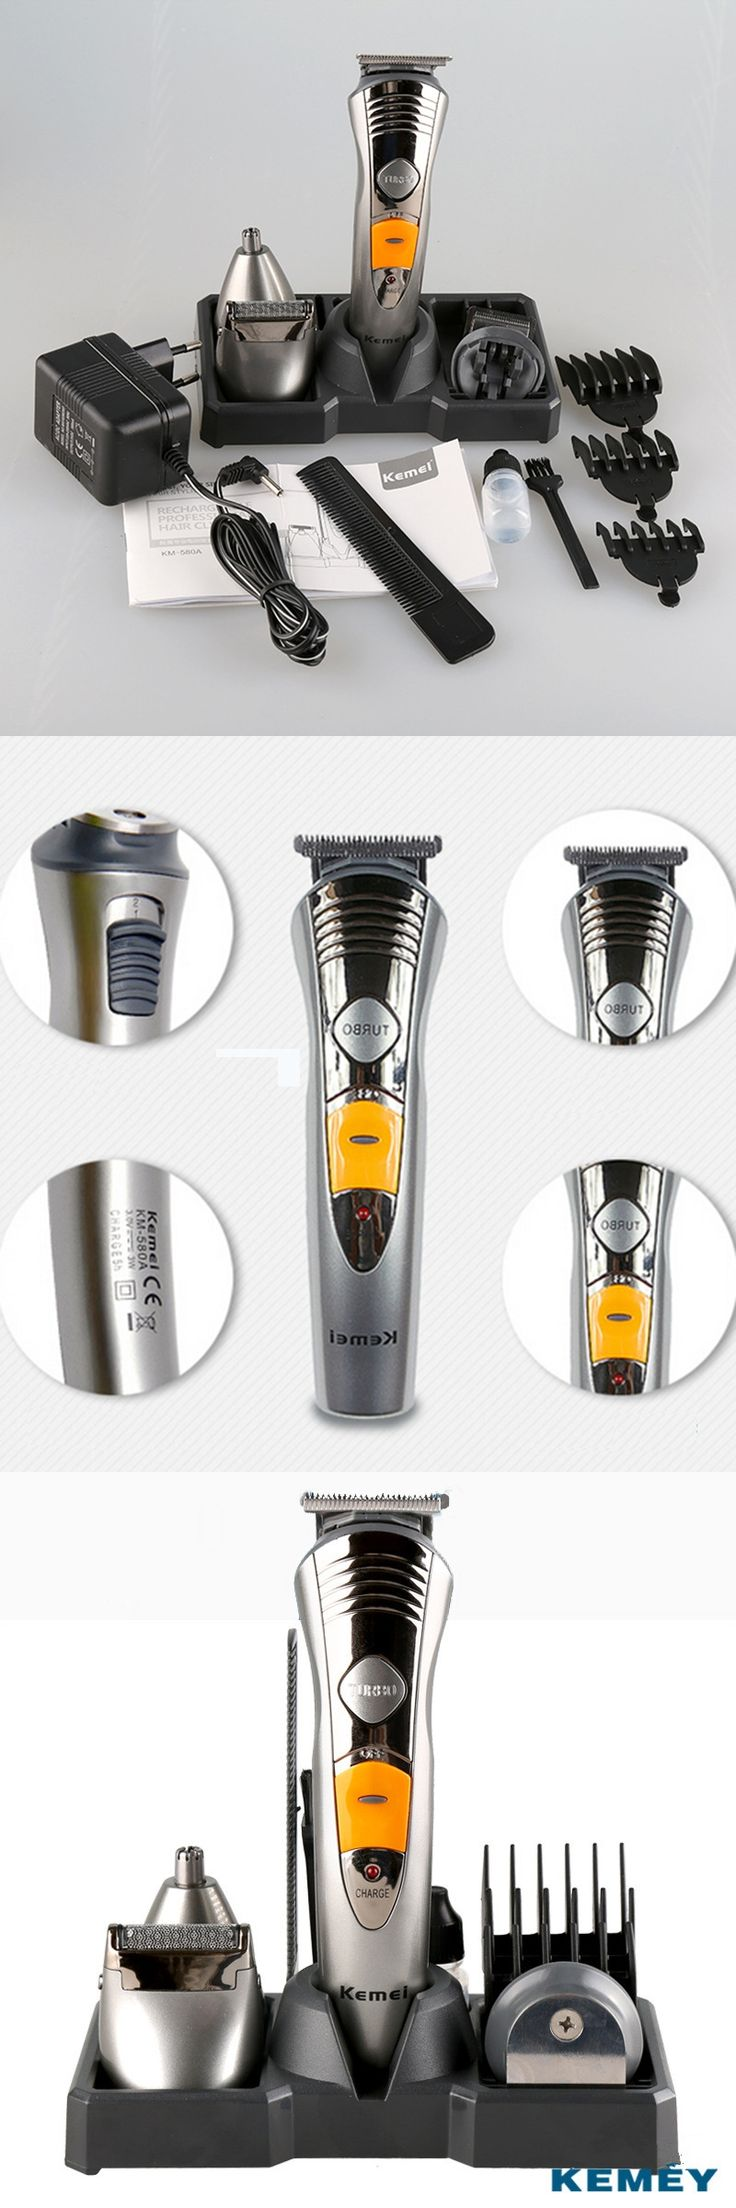 Kemei Rechargeable Electric Clipper Hair Trimmer Beard Shaver Nose Hair Trimmer 7 in 1